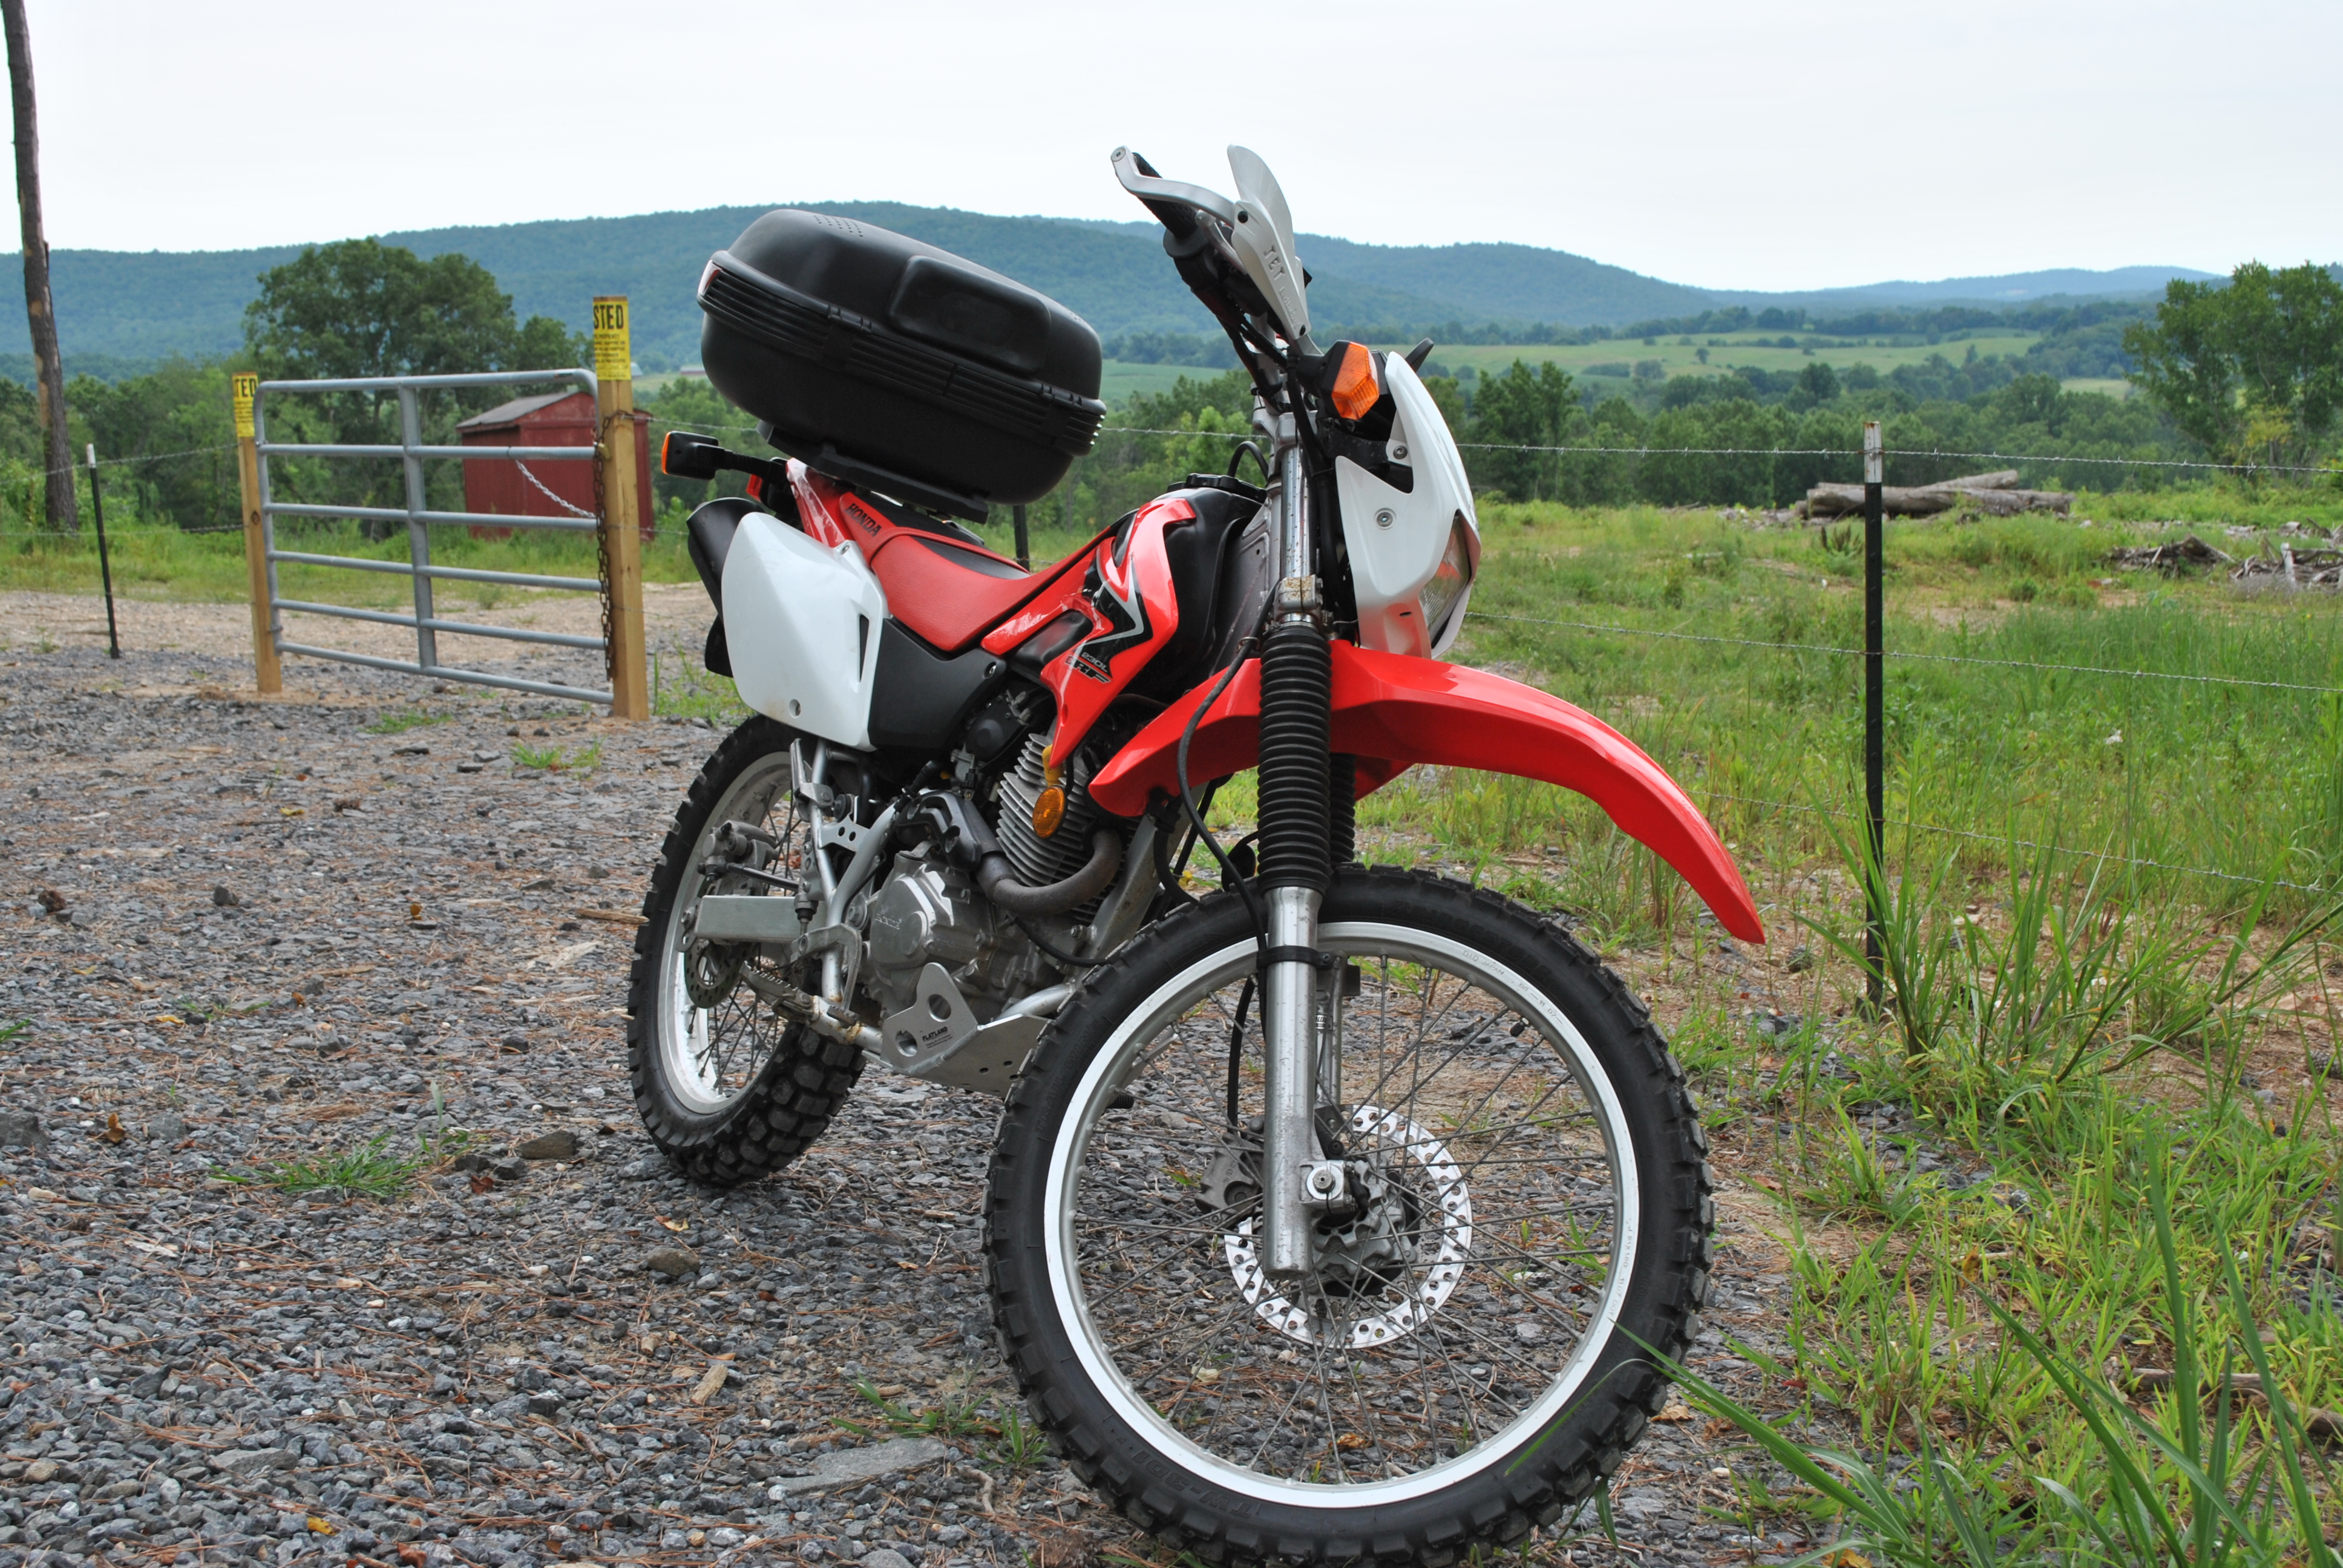 crf230l wiring diagram crf230l owners check in page 31 adventure rider  crf230l owners check in page 31